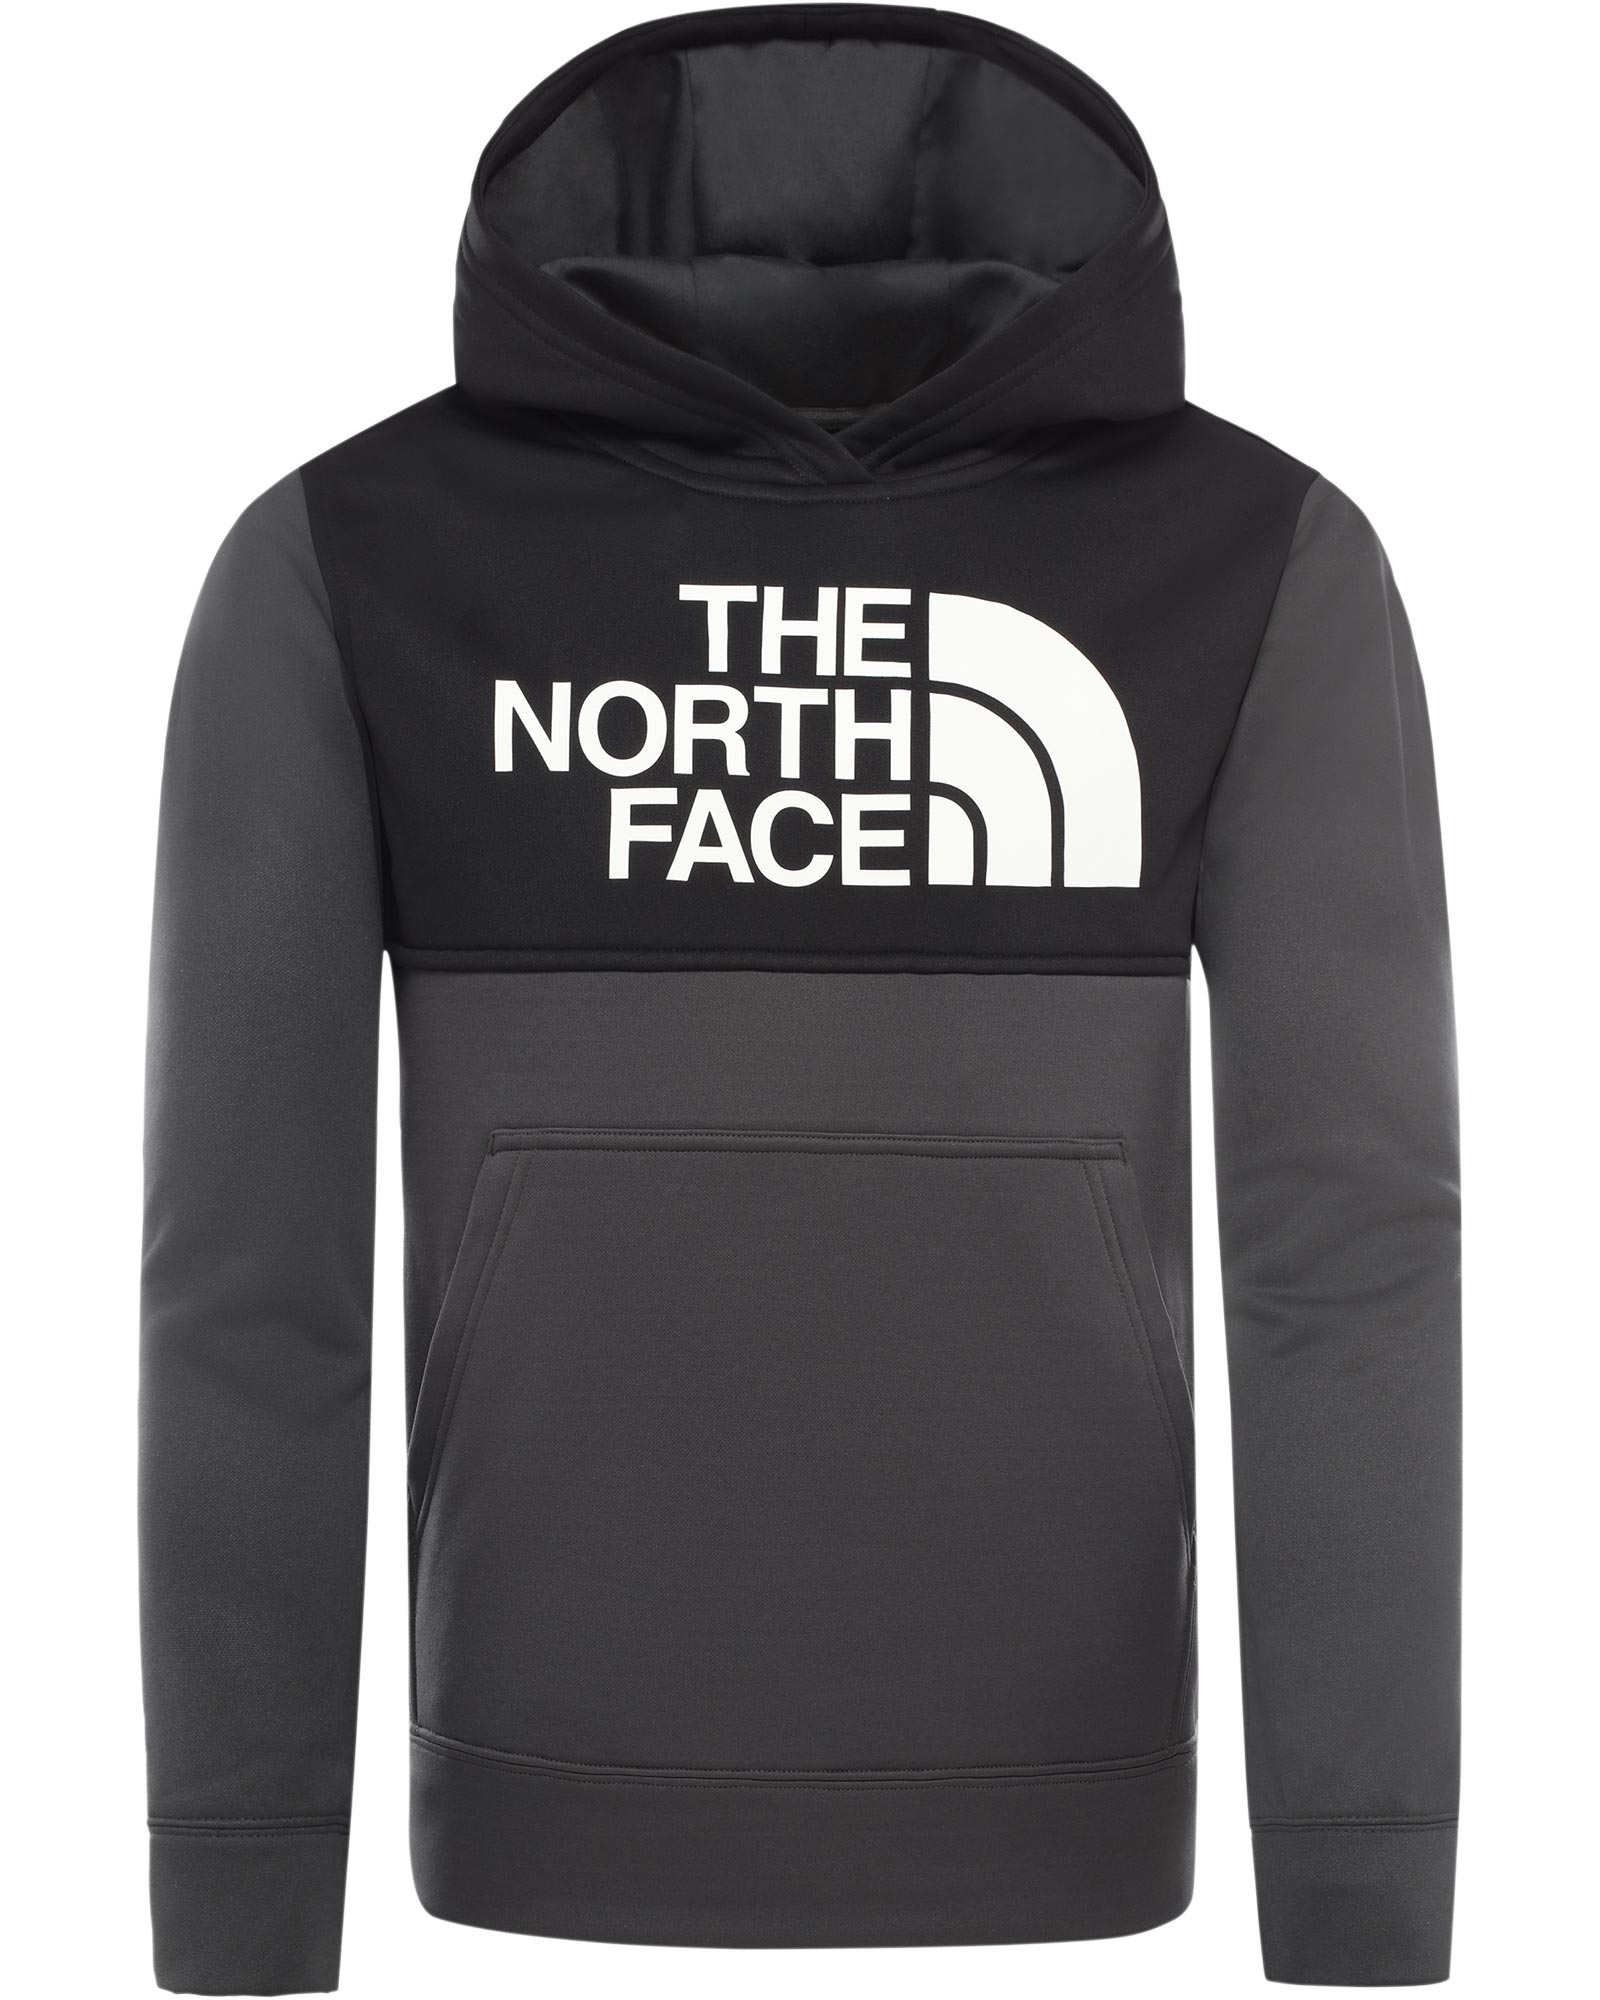 The North Face Boys' Surgent Pullover Block Hoodie XL 0